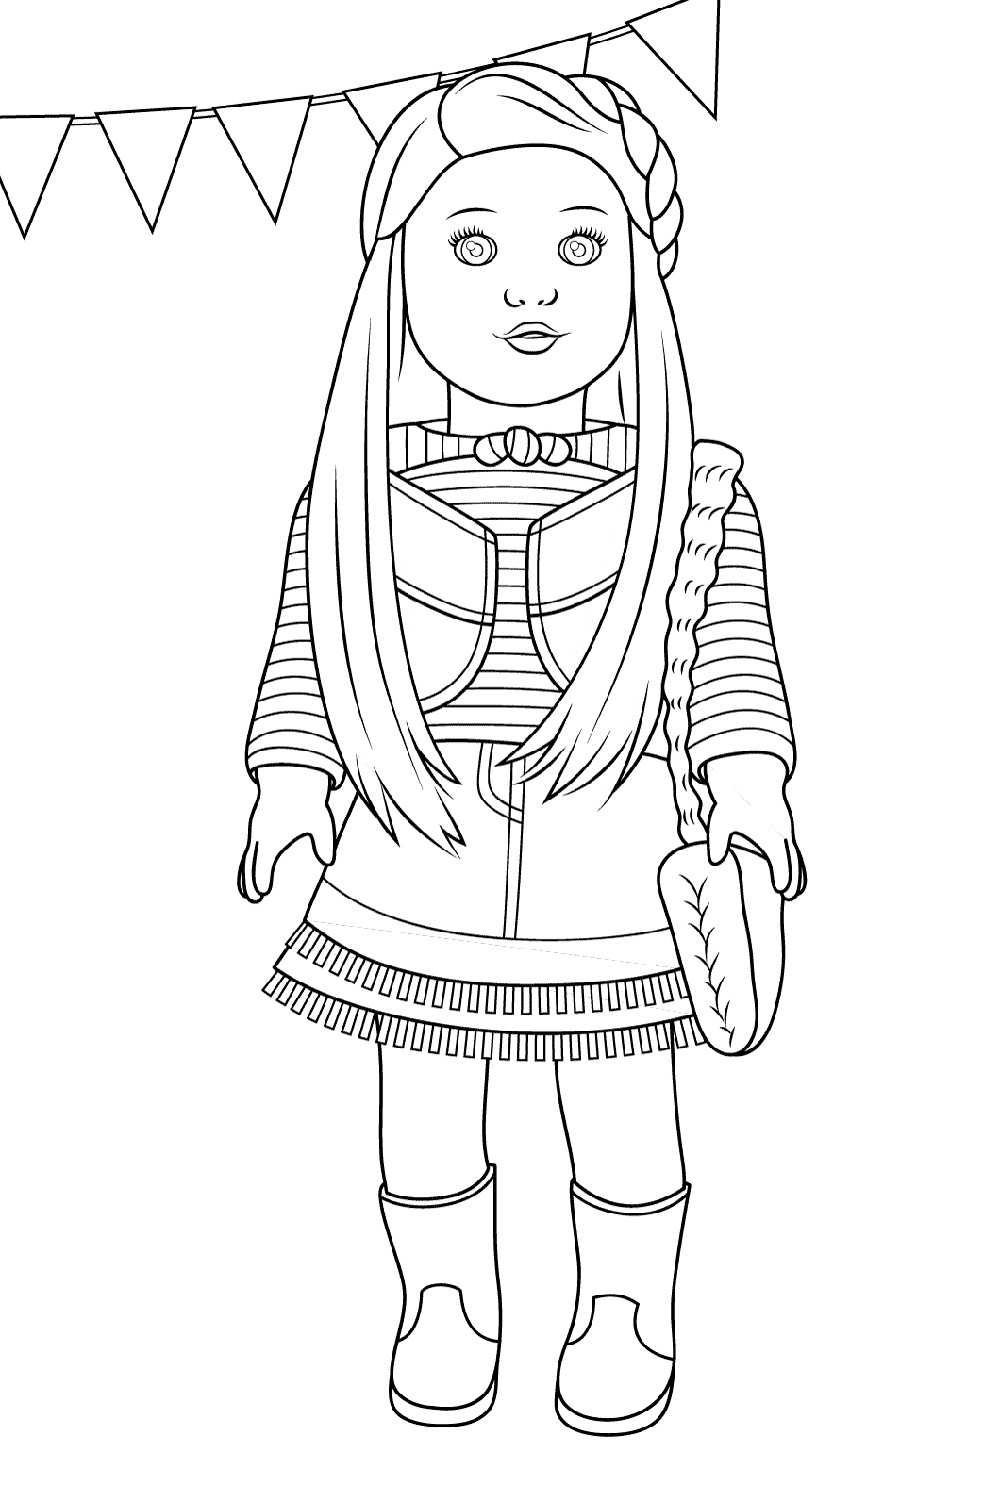 Baby Doll Coloring Page To Print American Girl Doll Pictures Coloring Pages For Girls Coloring Pages To Print